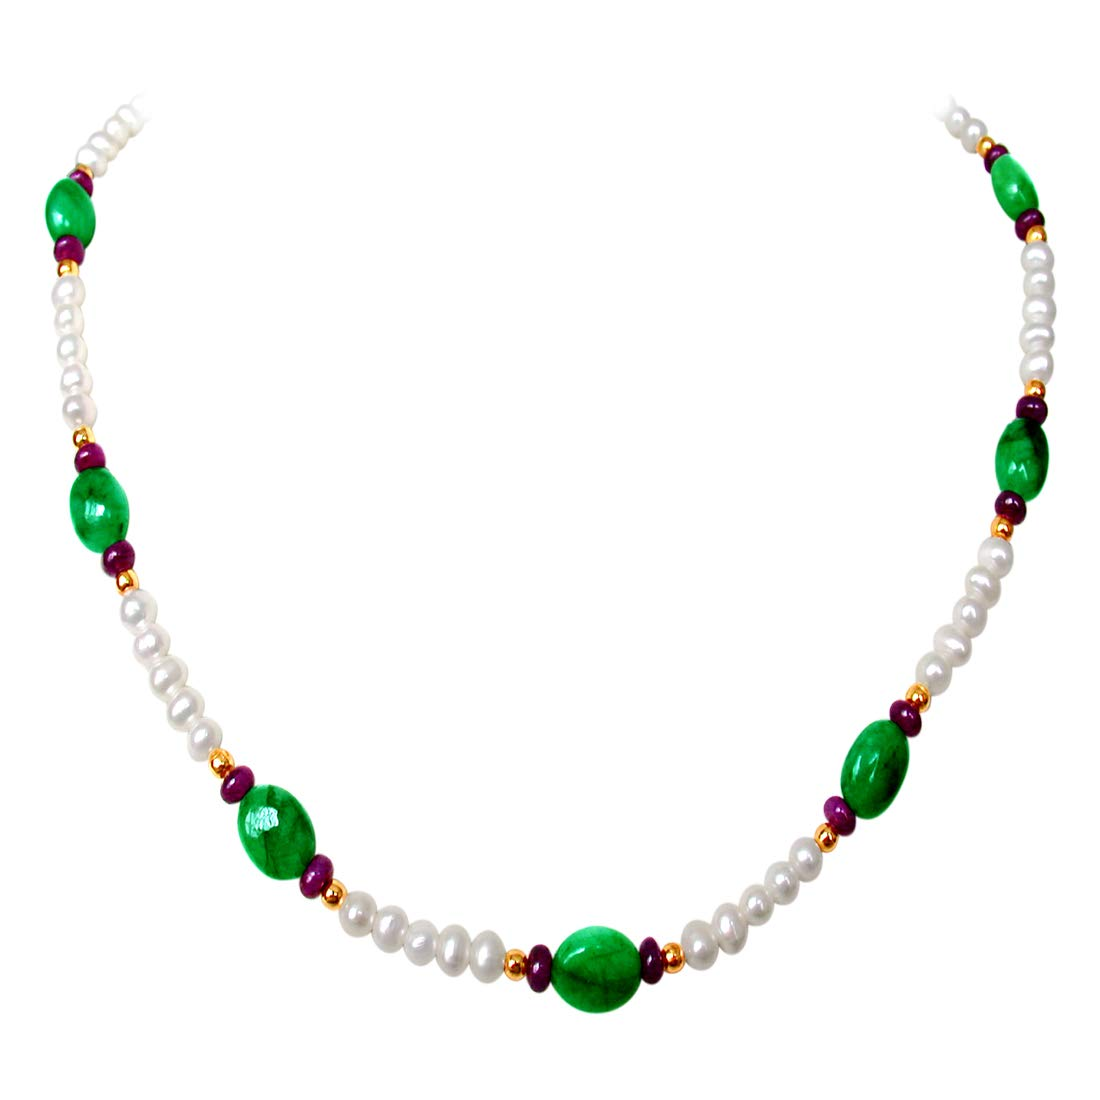 Green Sheen - Single Line Real Oval Emerald, Ruby Beads & Freshwater Pearl Necklace for Women (SN175)